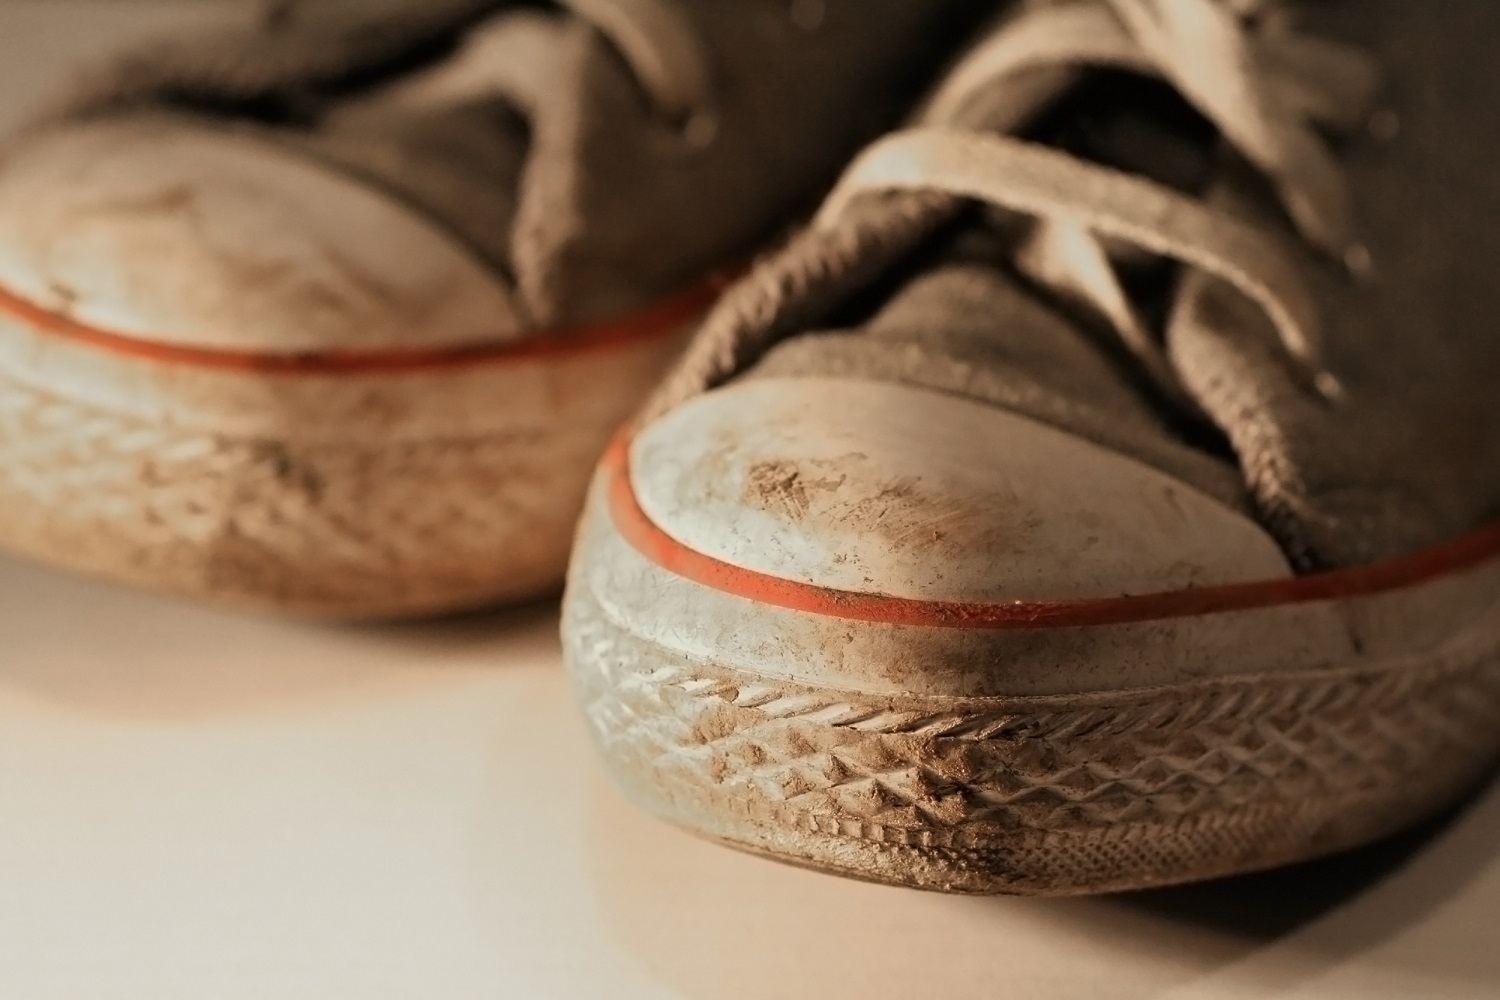 How To Clean Leather Shoes With Mud